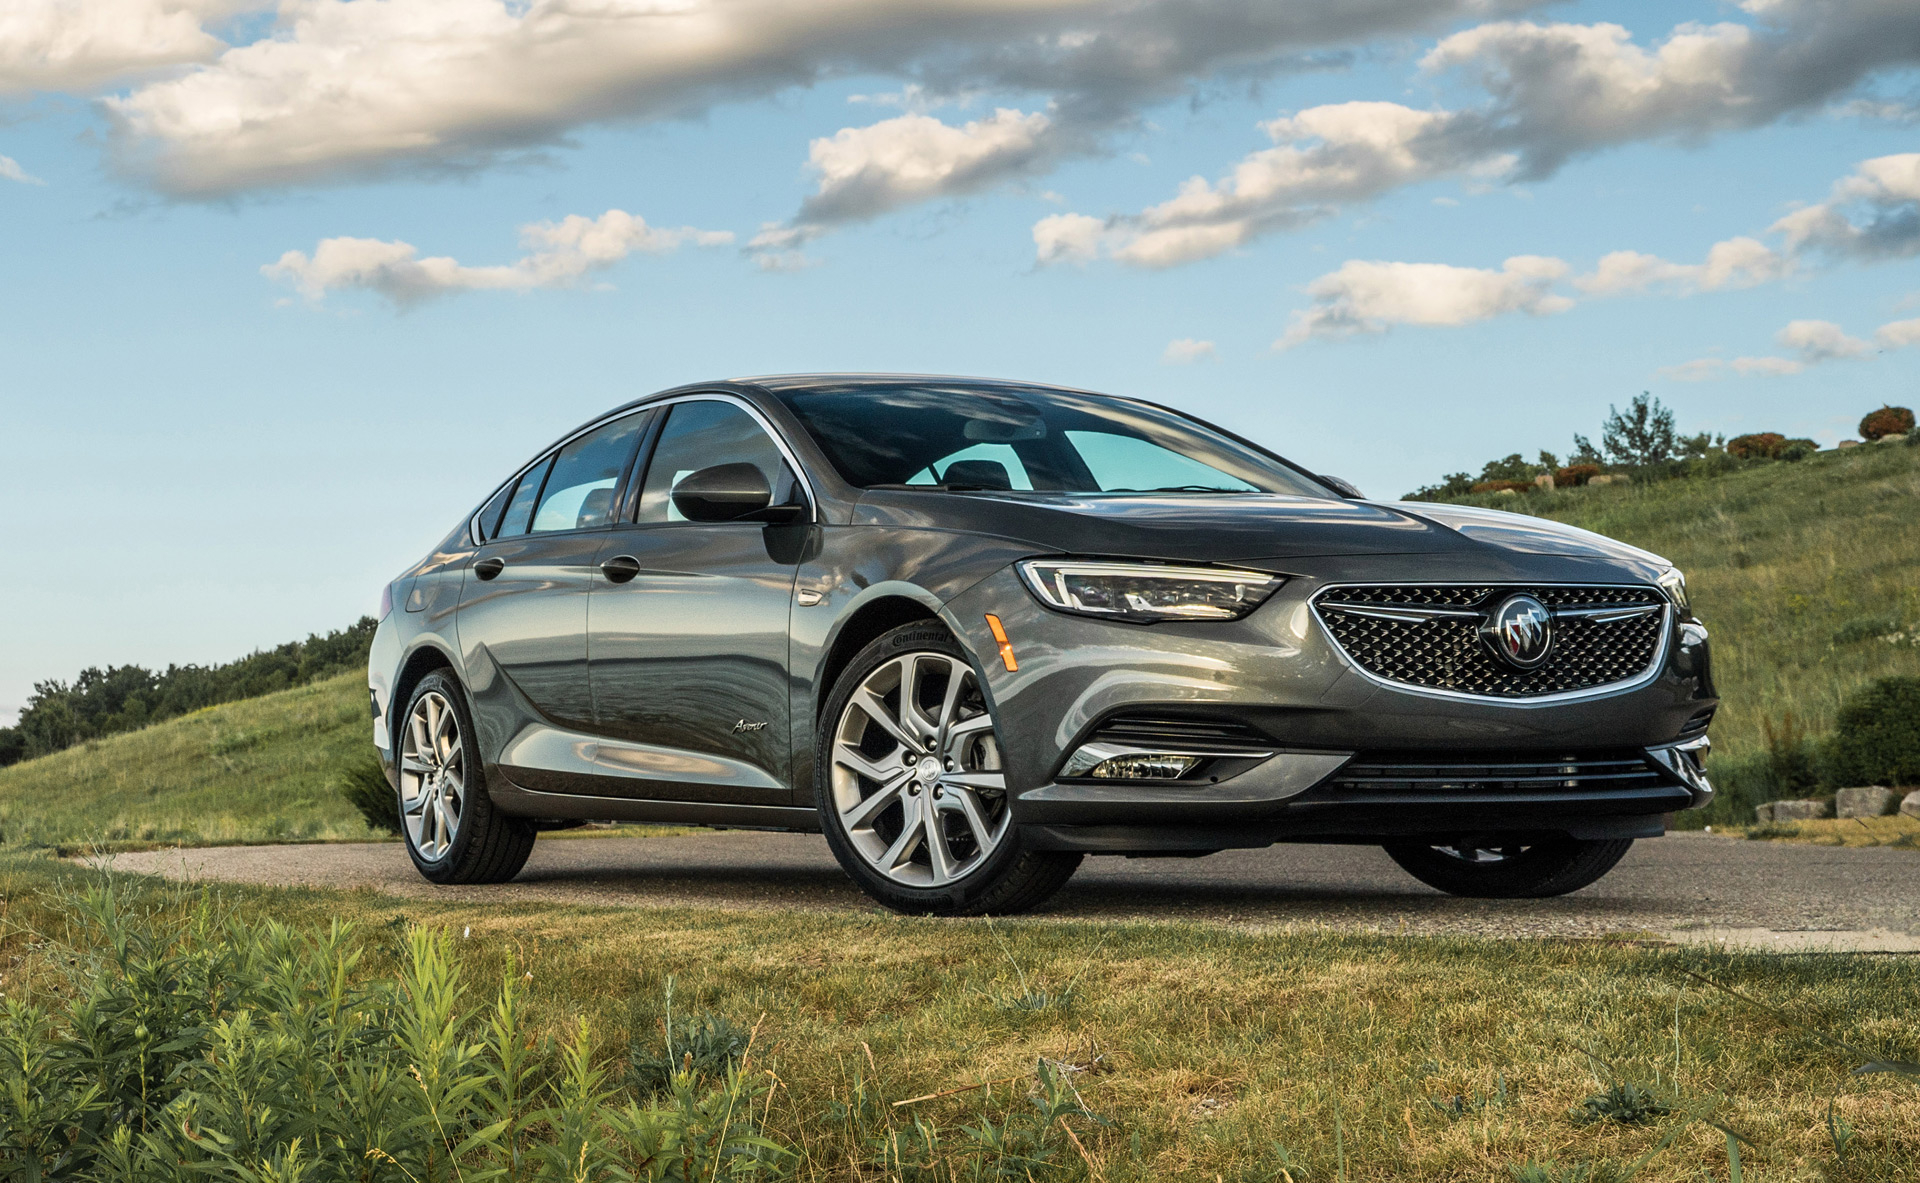 2019 Buick Regal Sportback Avenir: A Mid-Size, Full-Luxe New 2022 Buick Regal Reviews, Images, Price